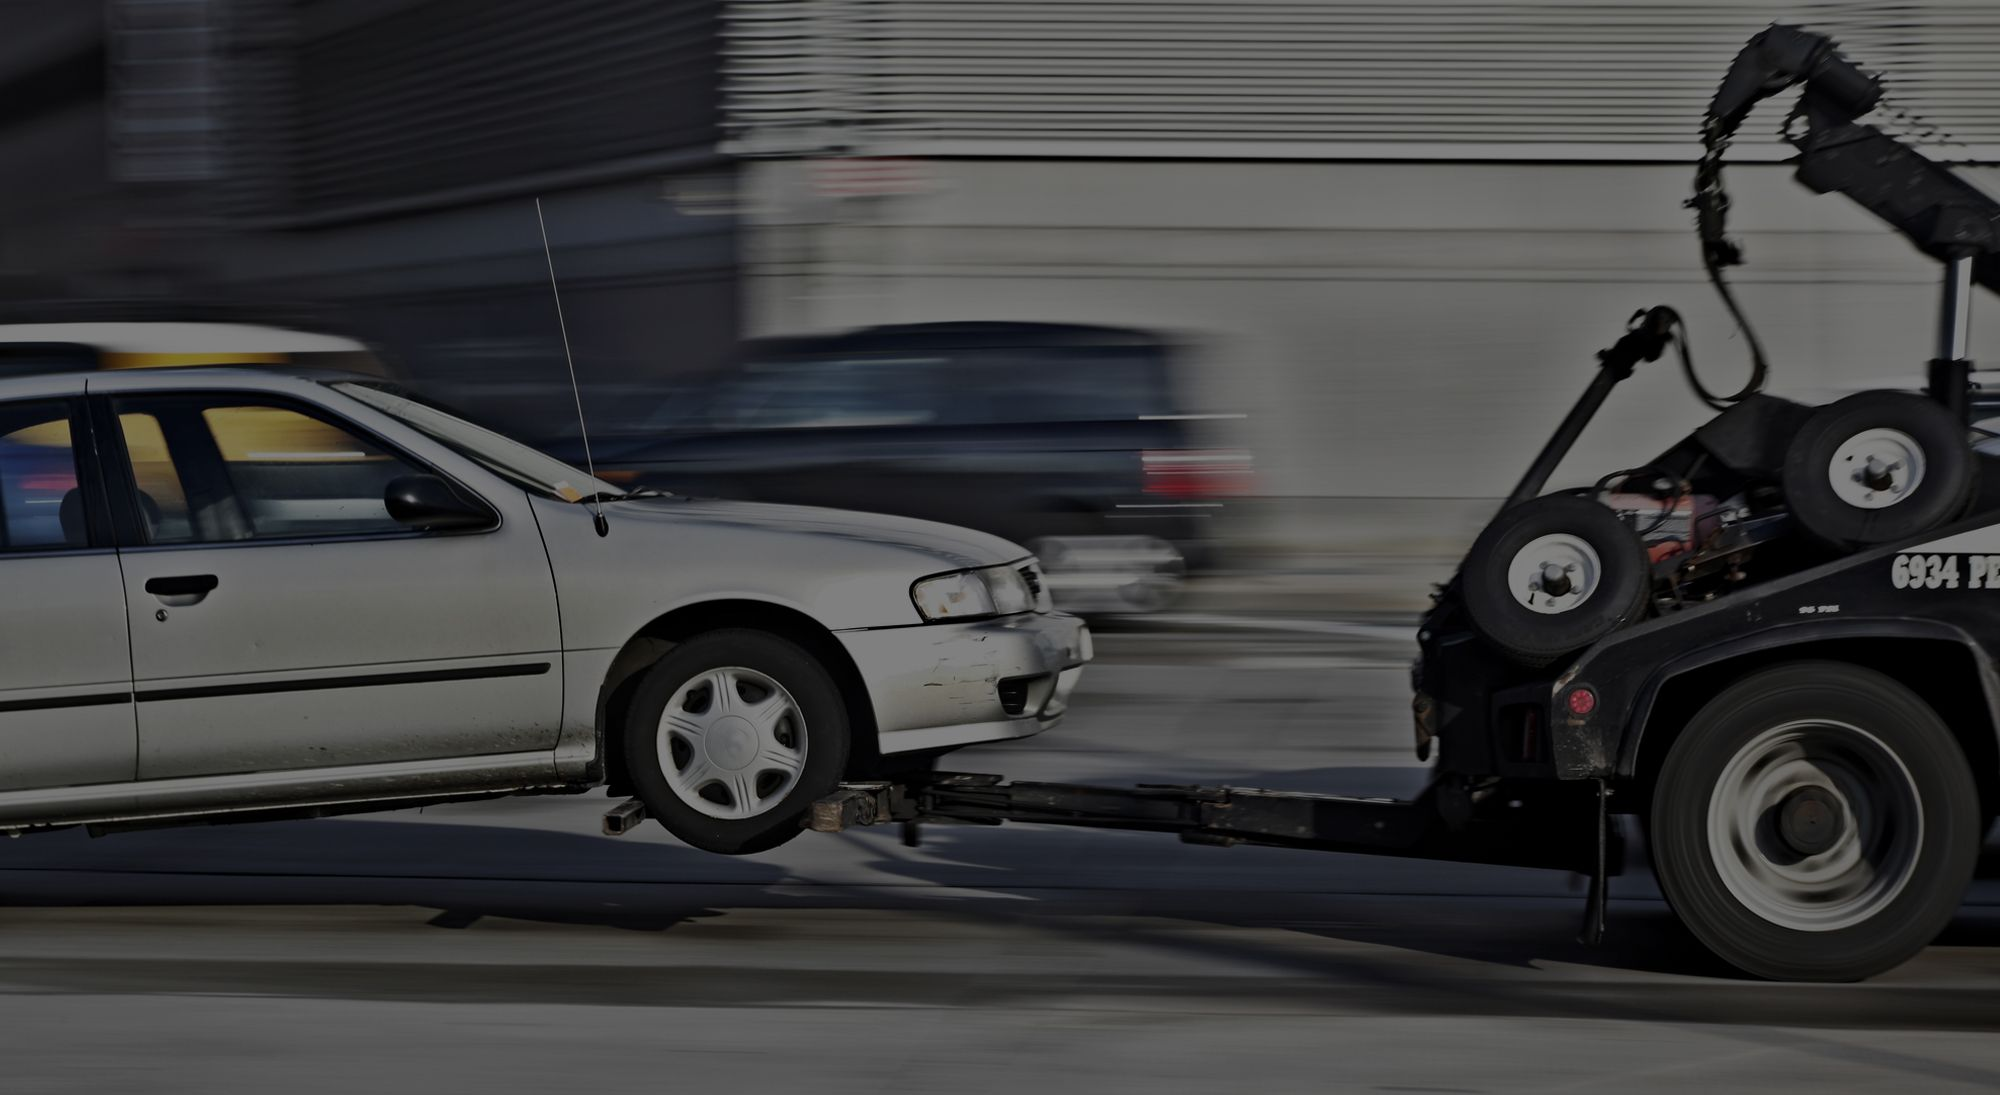 Find A Towing Service Near You 24 7 With Images Towing Service Towing Car